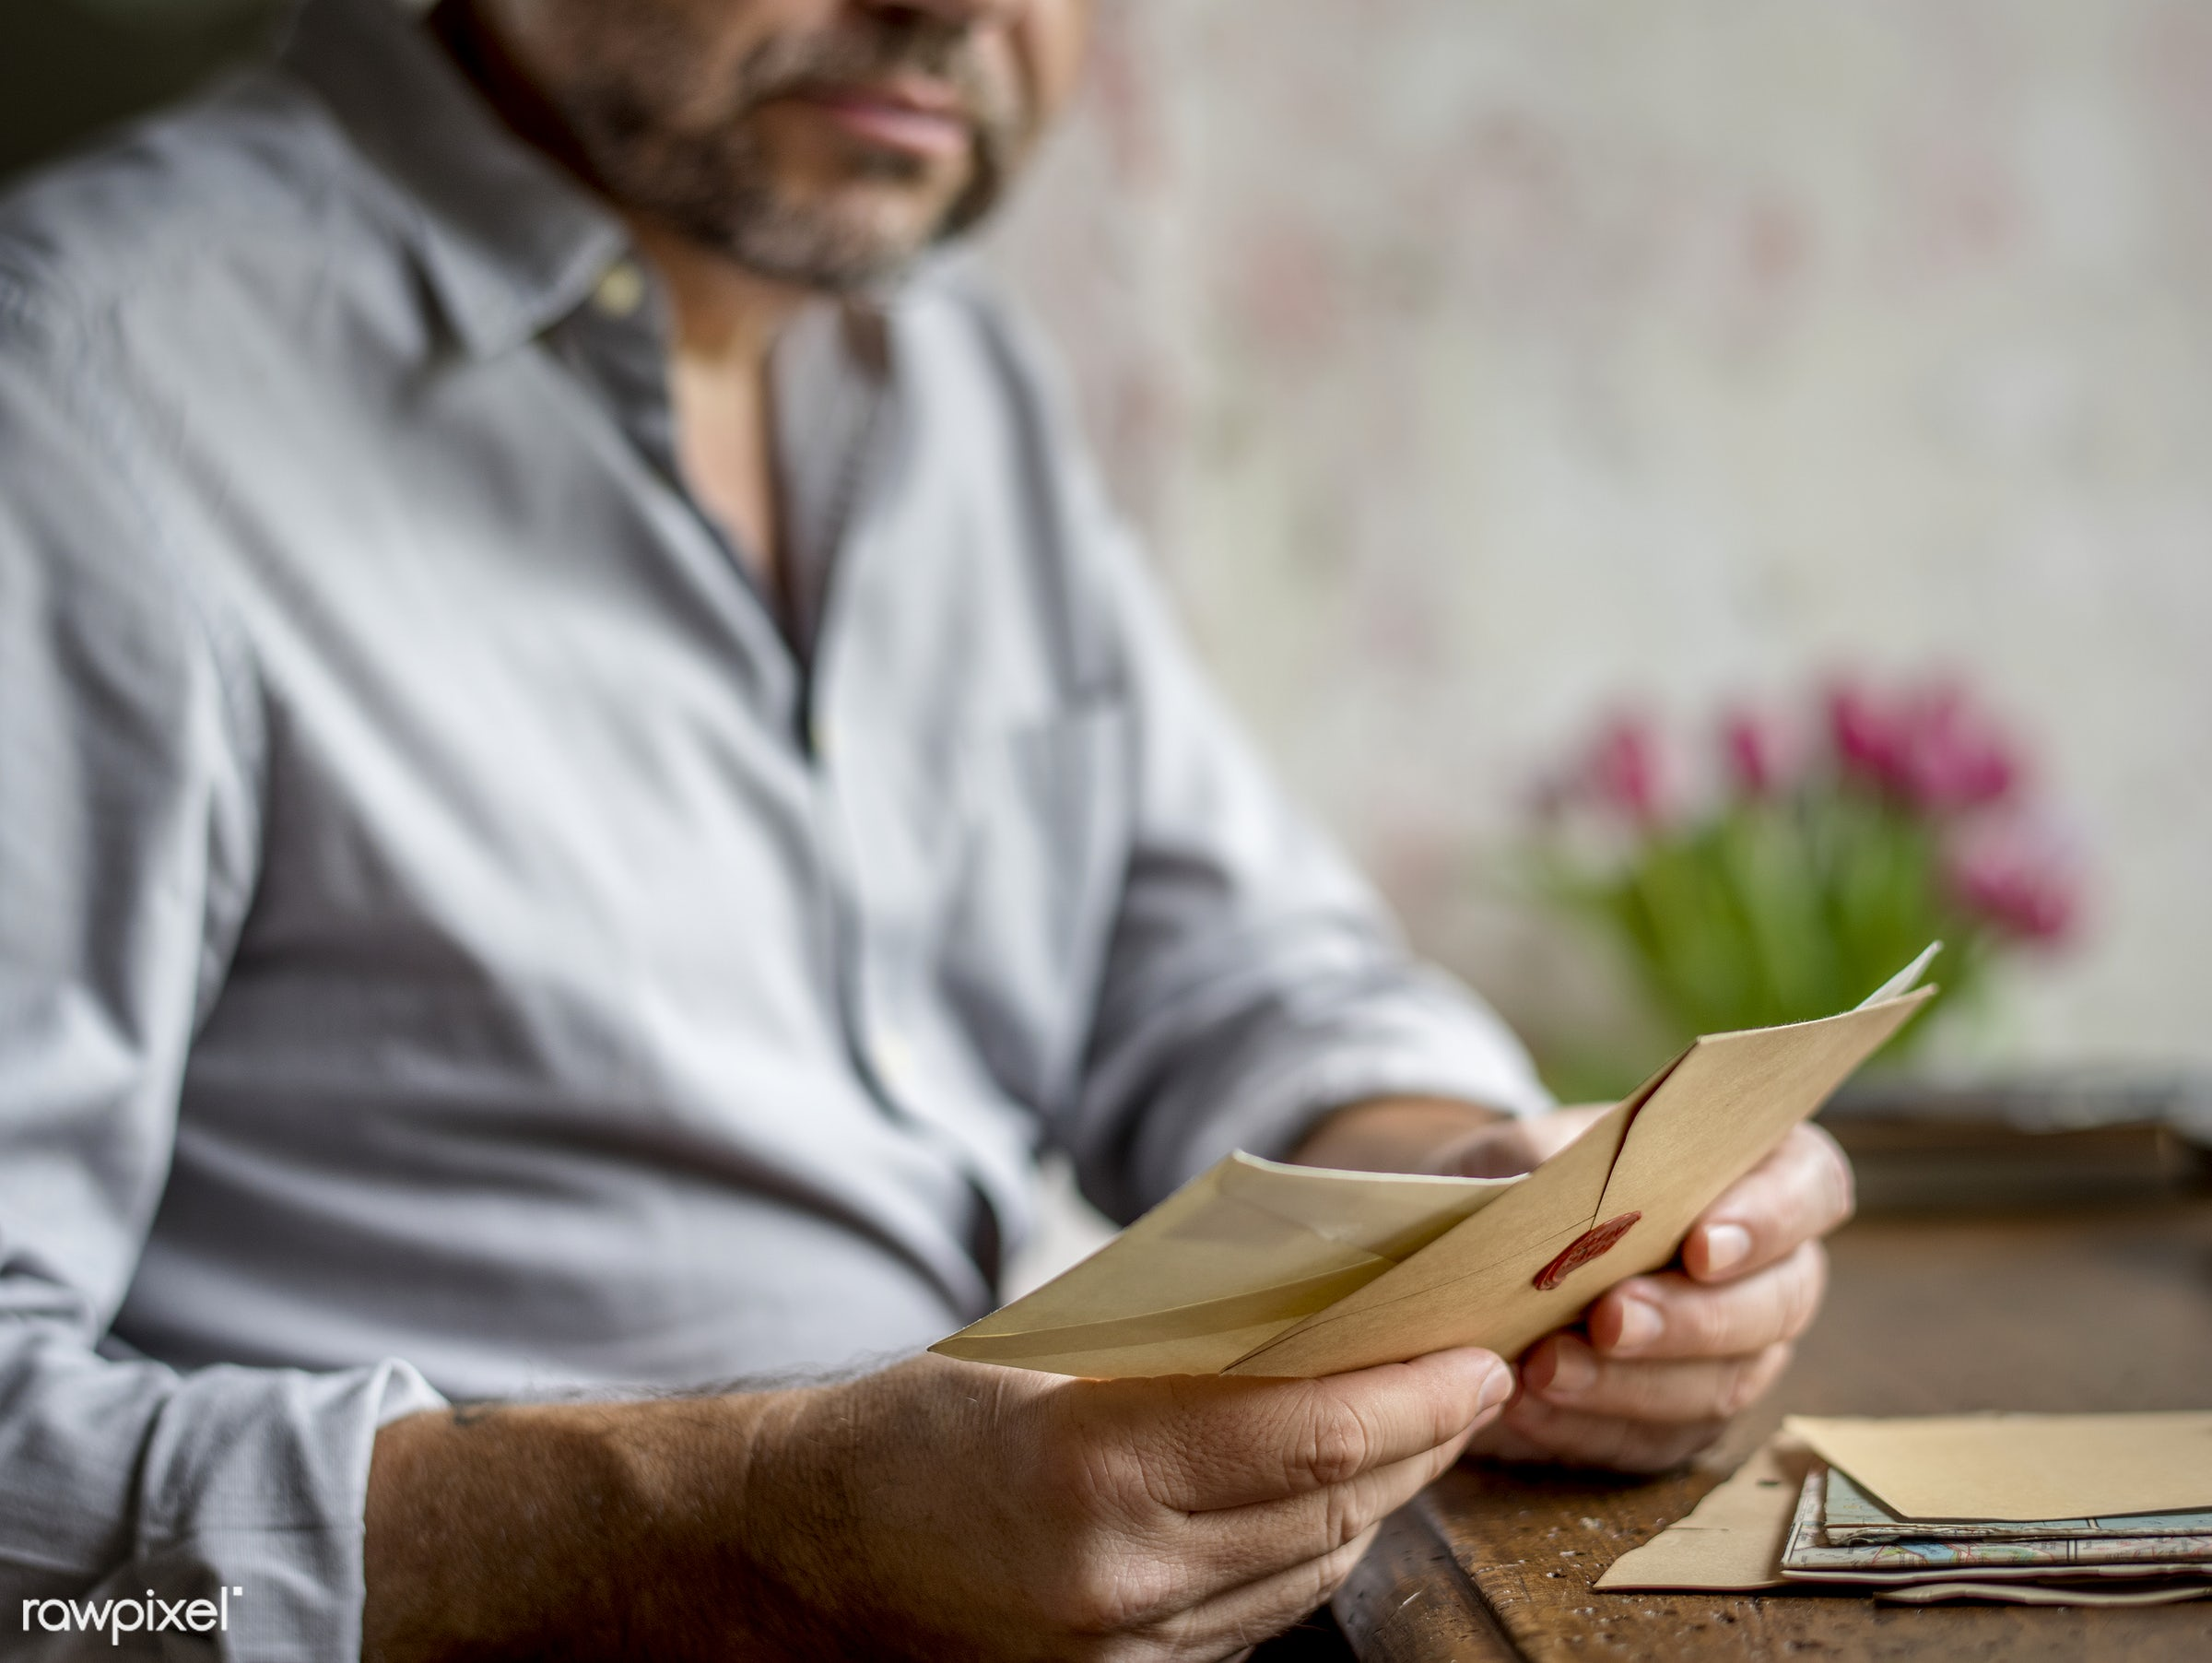 old, workspace, paper, envelope, data, retro, received, desk, story, document, style, old fashion, hands, write, stamps, men...